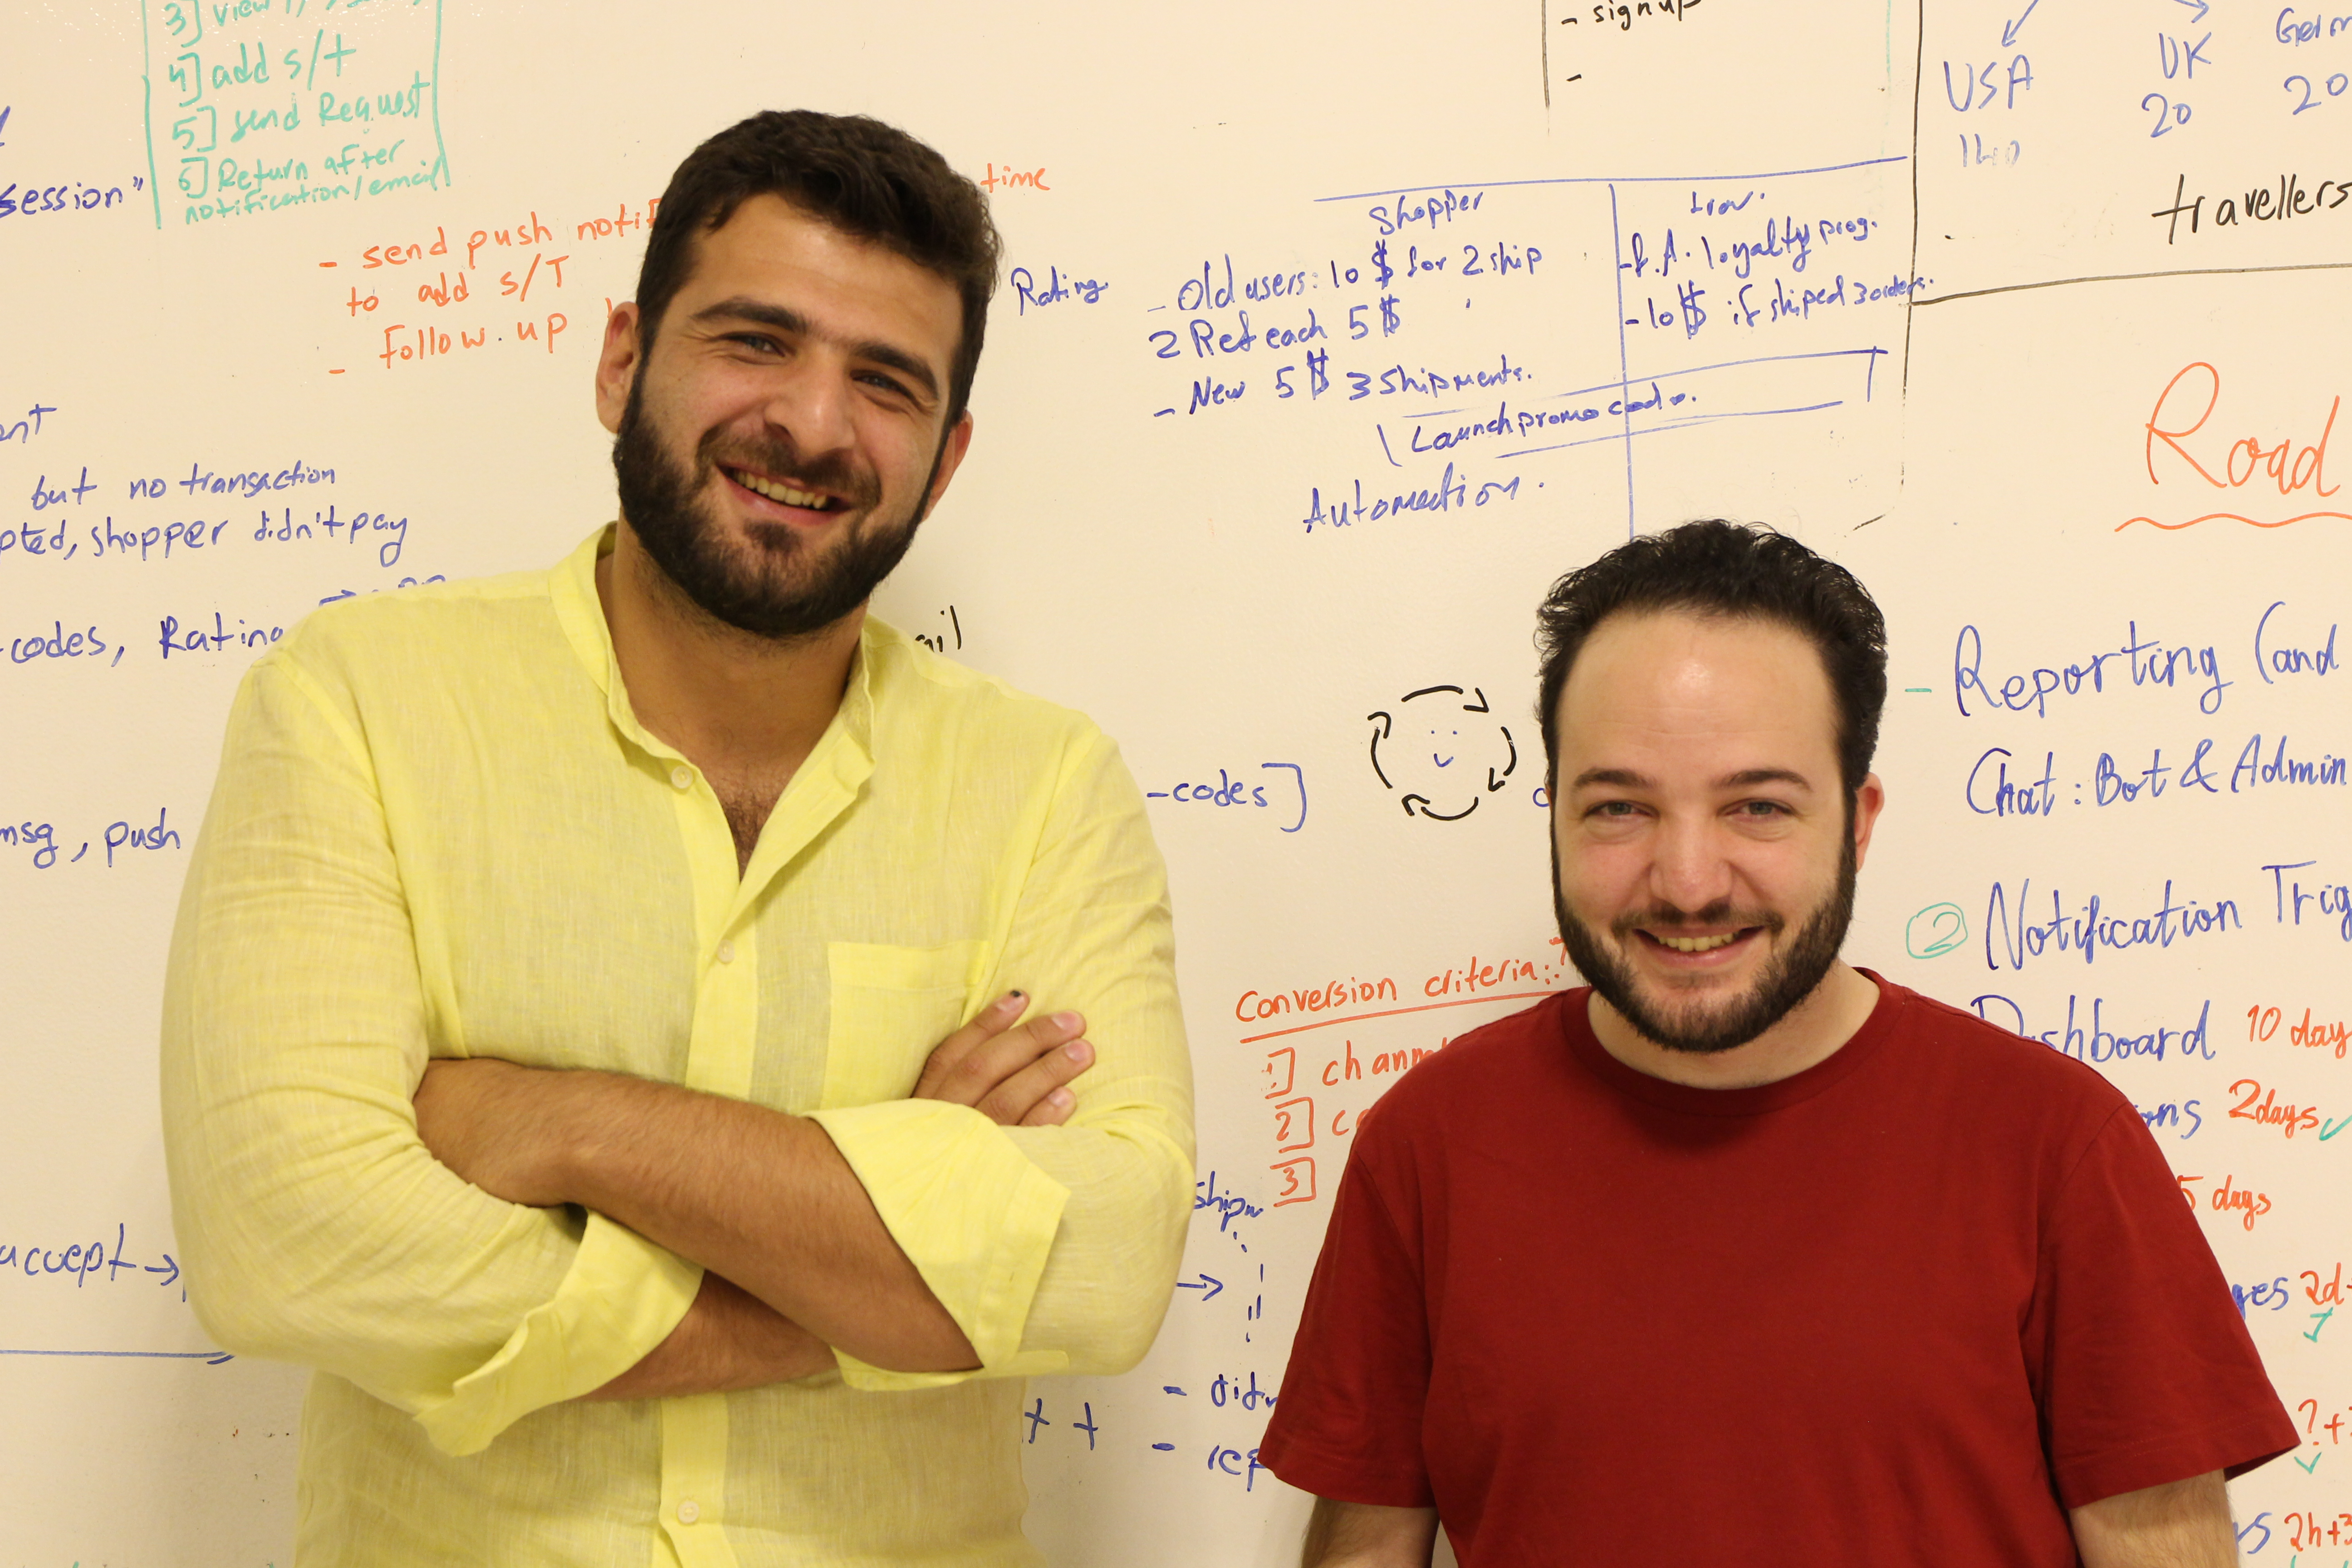 Egypt-based HitchHiker, a social network connecting travelers with shoppers, raises $200,000 SEED round